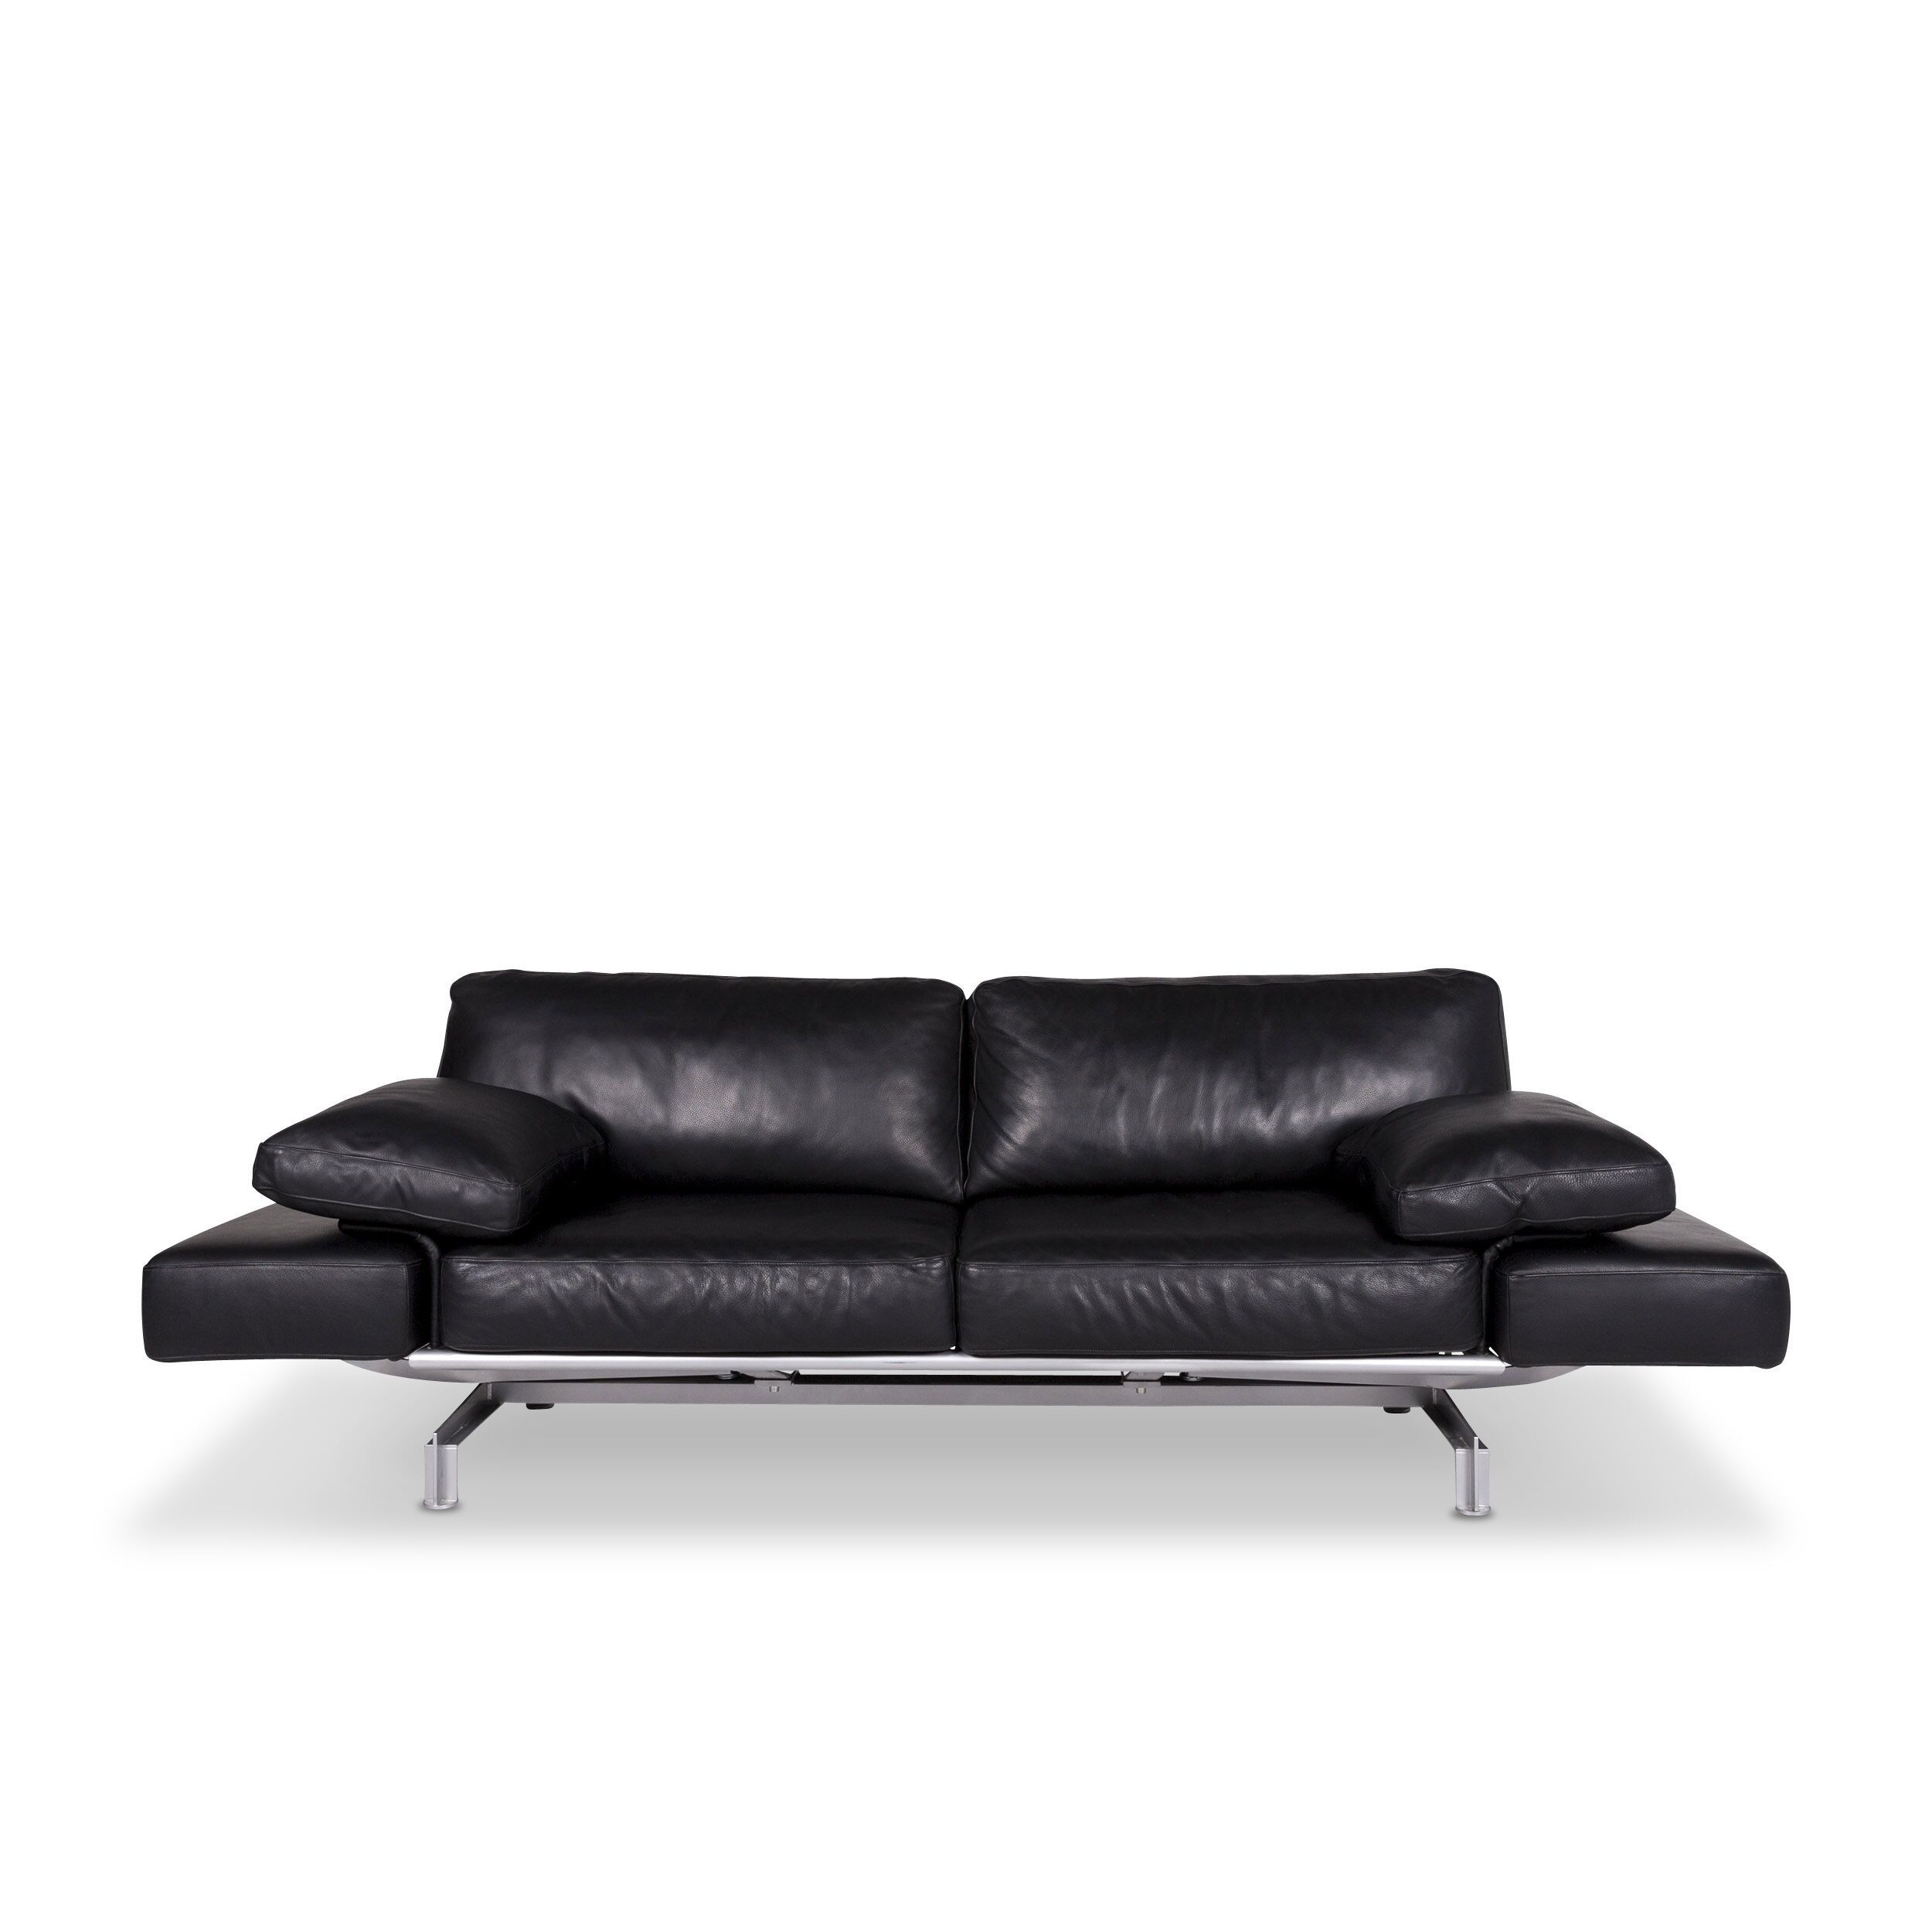 Quotes On Sofa Wk Wohnen Gaetano 687 Designer Leather Sofa Black Two Seater Relax Function Couch 9547